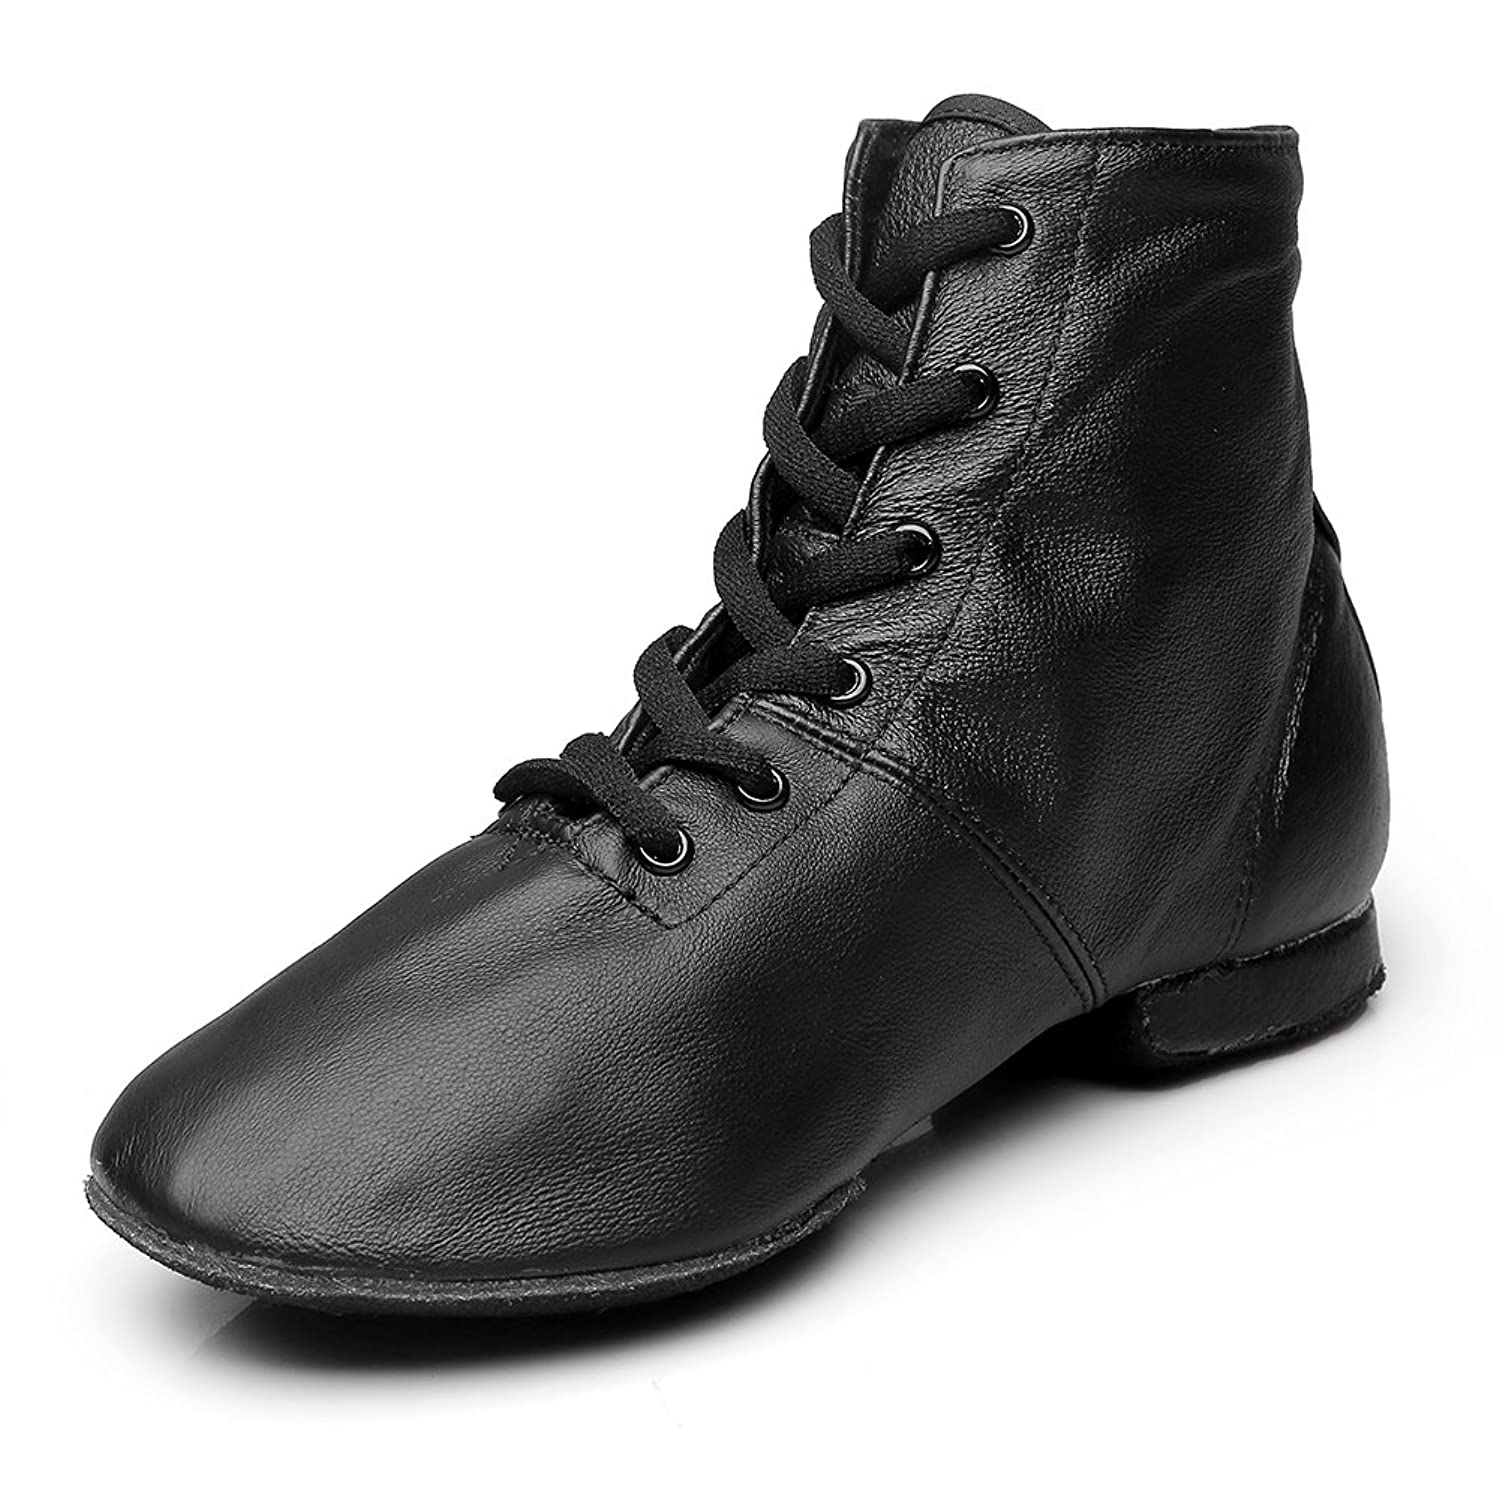 Steampunk Boots & Shoes, Heels & Flats MSMAX Professional Soft Leather Unisex Dance Shoe $28.99 AT vintagedancer.com